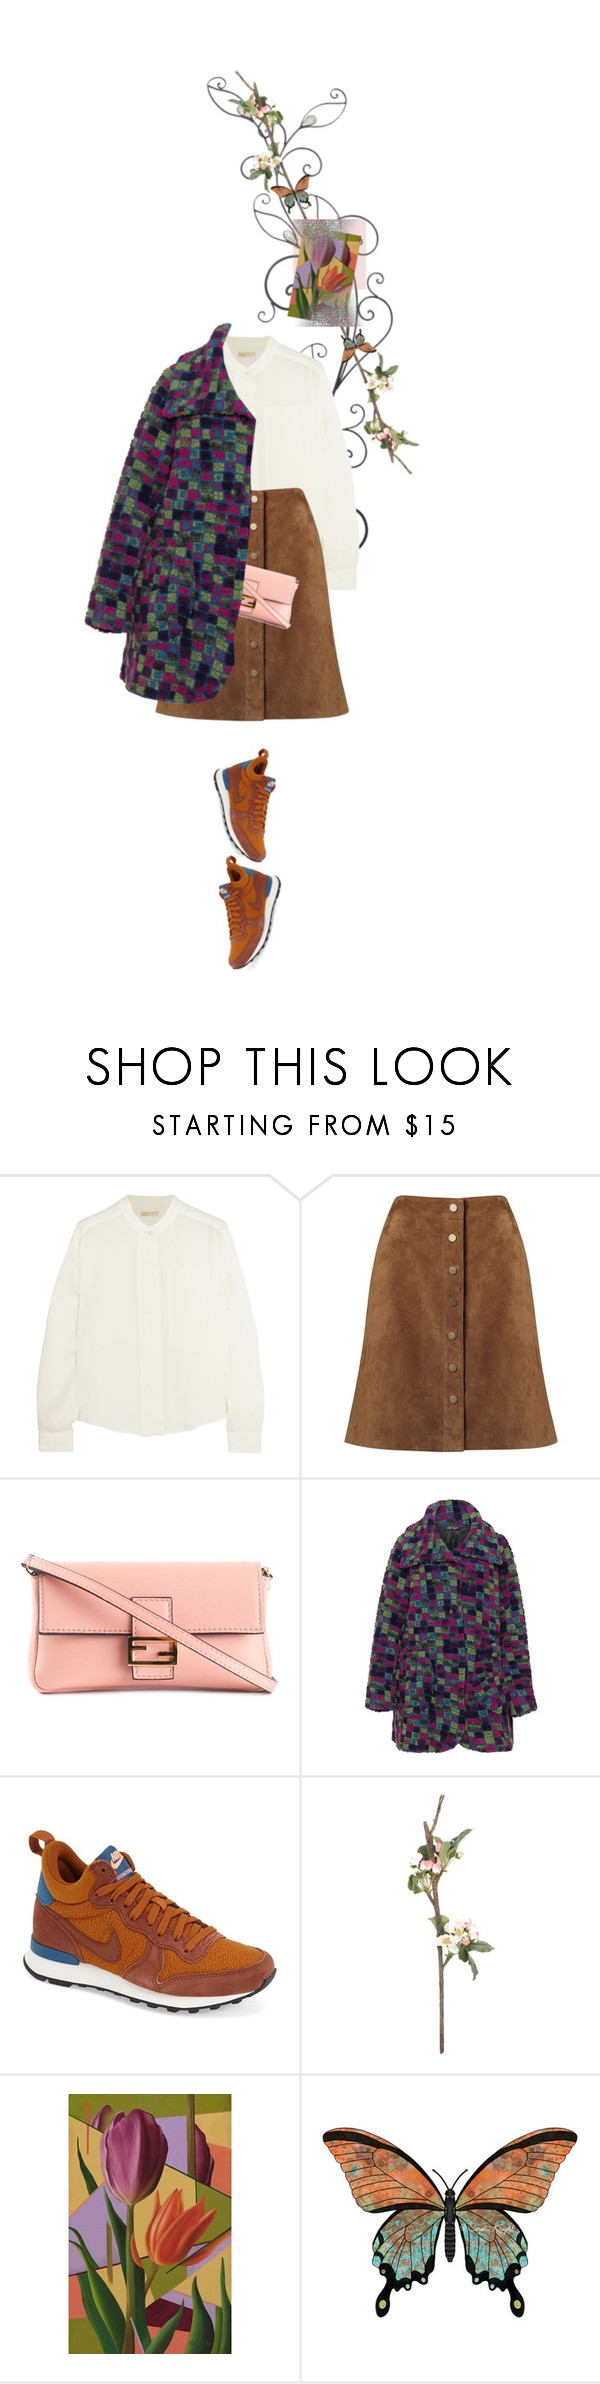 """""""Untitled #1250"""" by maja-z-94 ❤ liked on Polyvore featuring MICHAEL Michael Kors, Phase Eight, Fendi, Transparente, NIKE, Sia and NOVICA"""